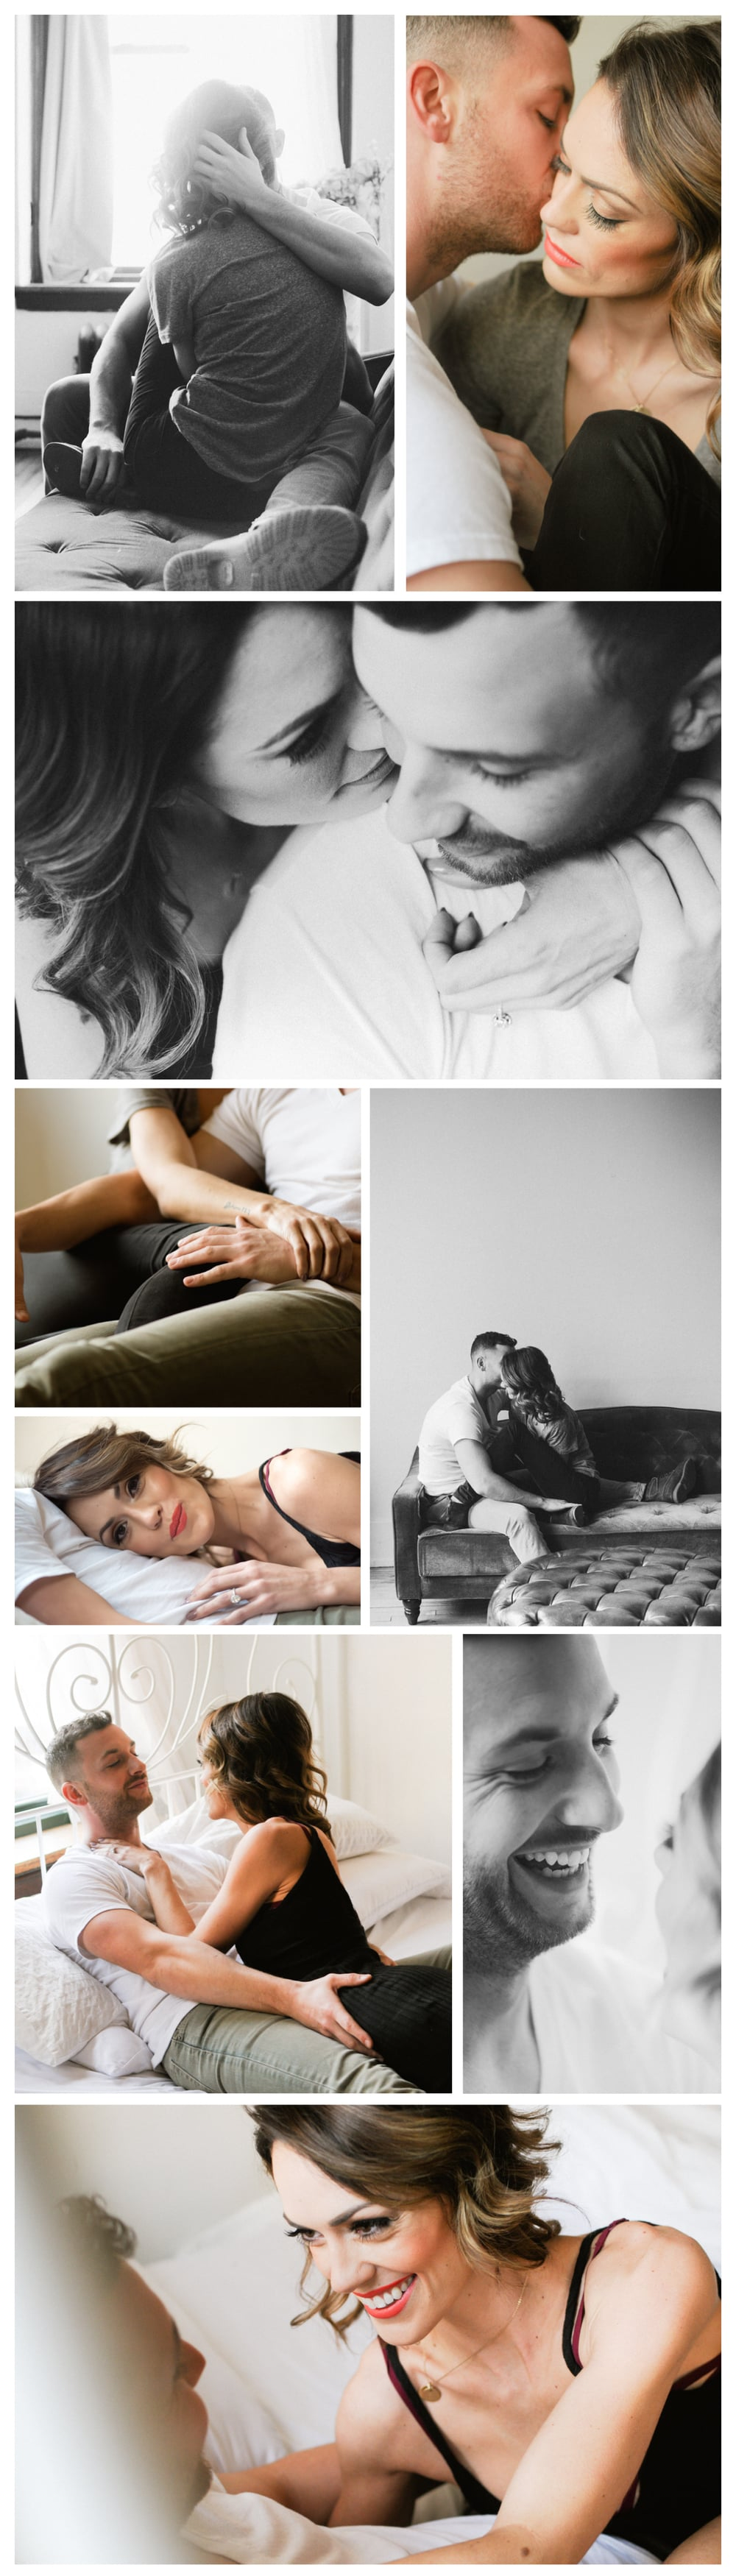 pittsburghcouplesboudoir